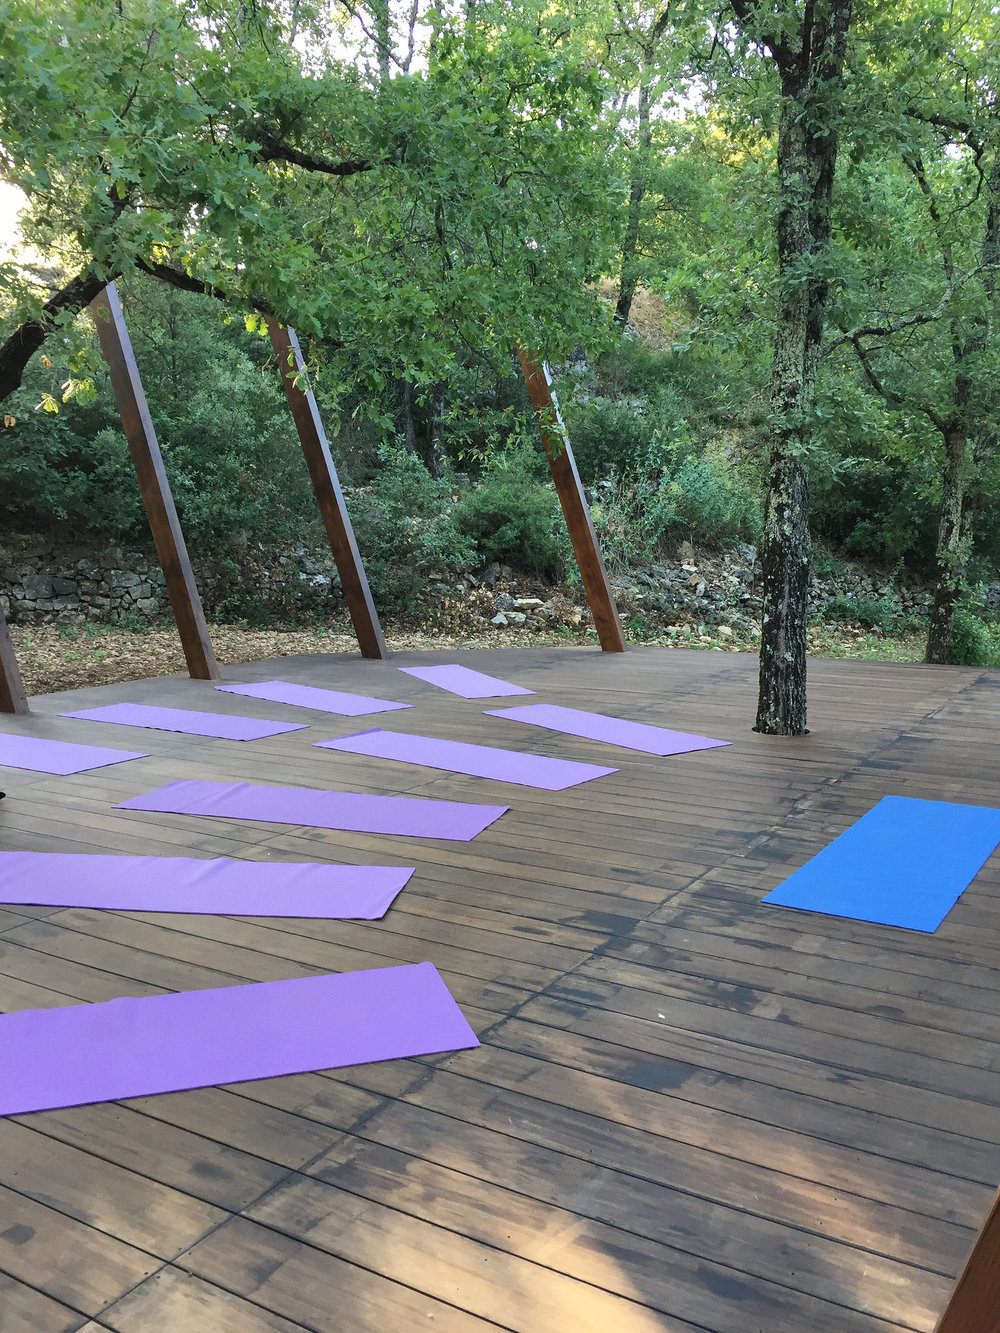 Yoga on the deck amongst the trees EAT.PRAY.MOVE Yoga Retreats | Provence, France